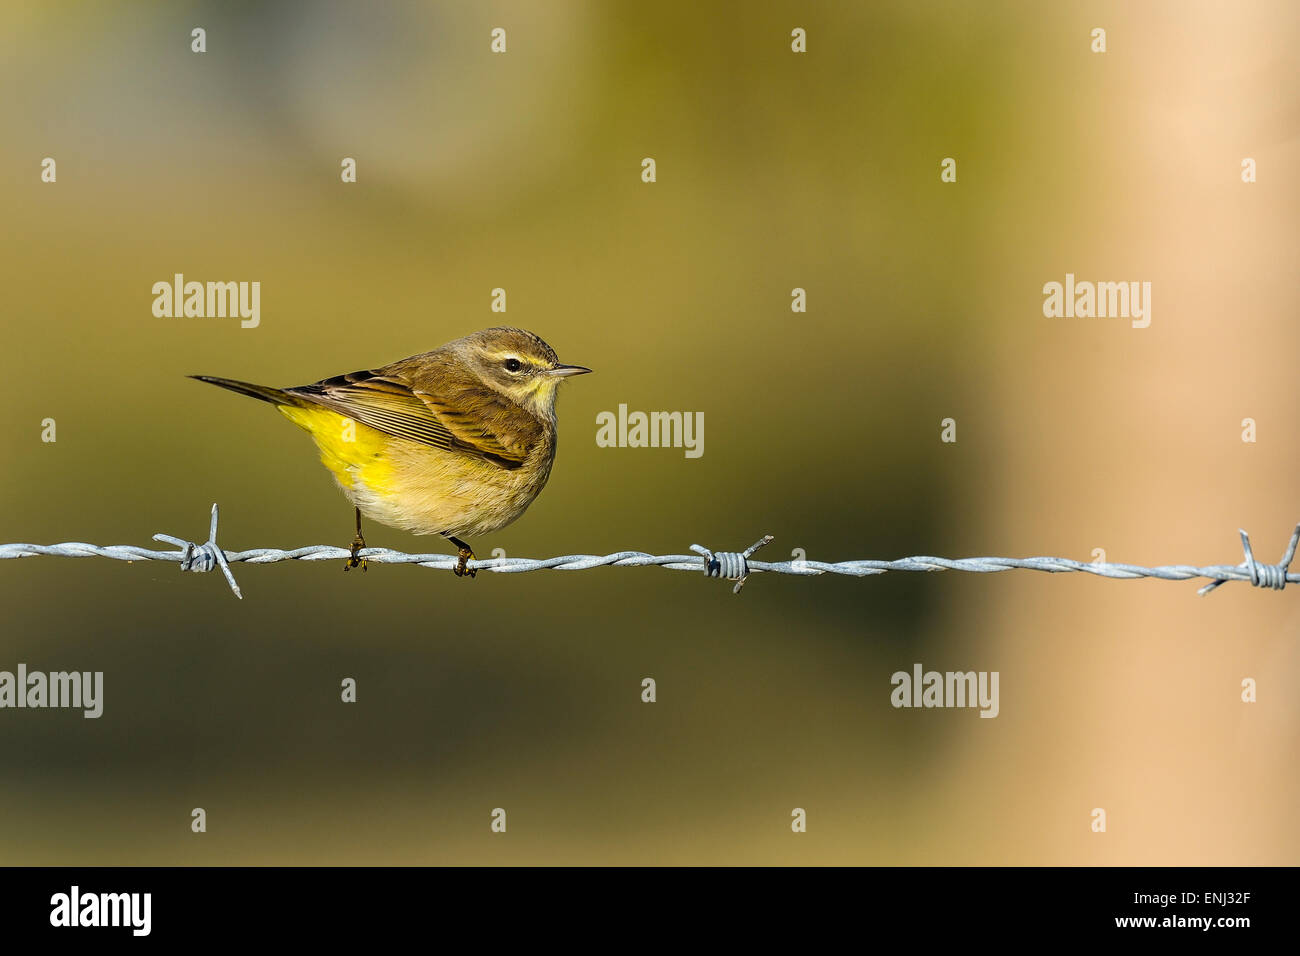 dendroica petechia, yellow warbler - Stock Image